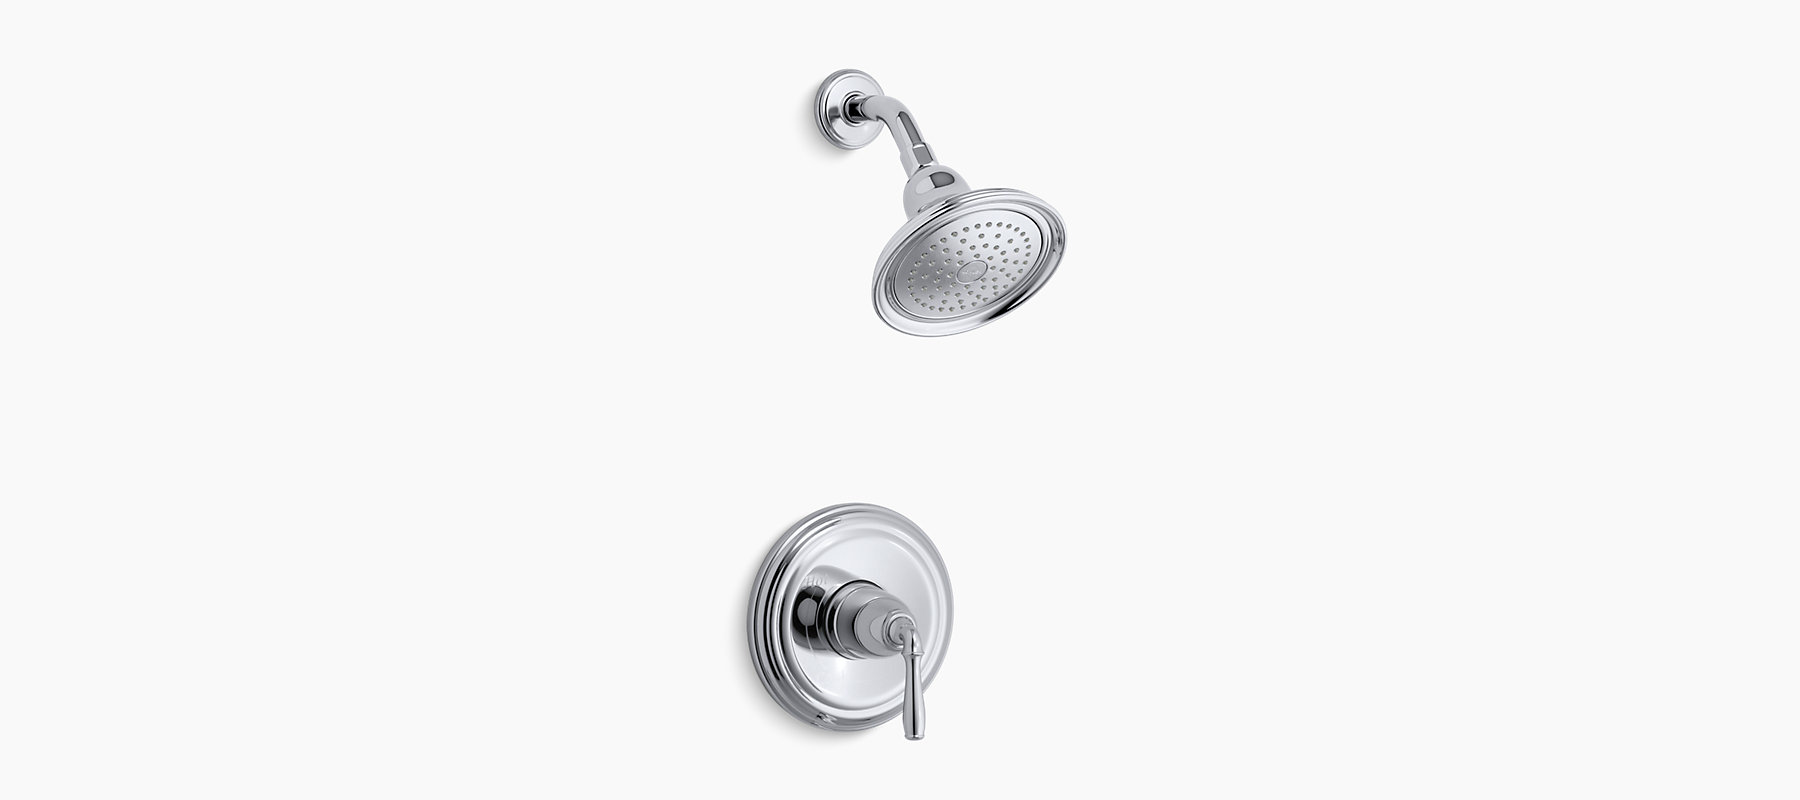 Devonshire RiteTemp Pressurebalancing Shower Faucet Trim With - Kohler devonshire bathroom faucet brushed nickel